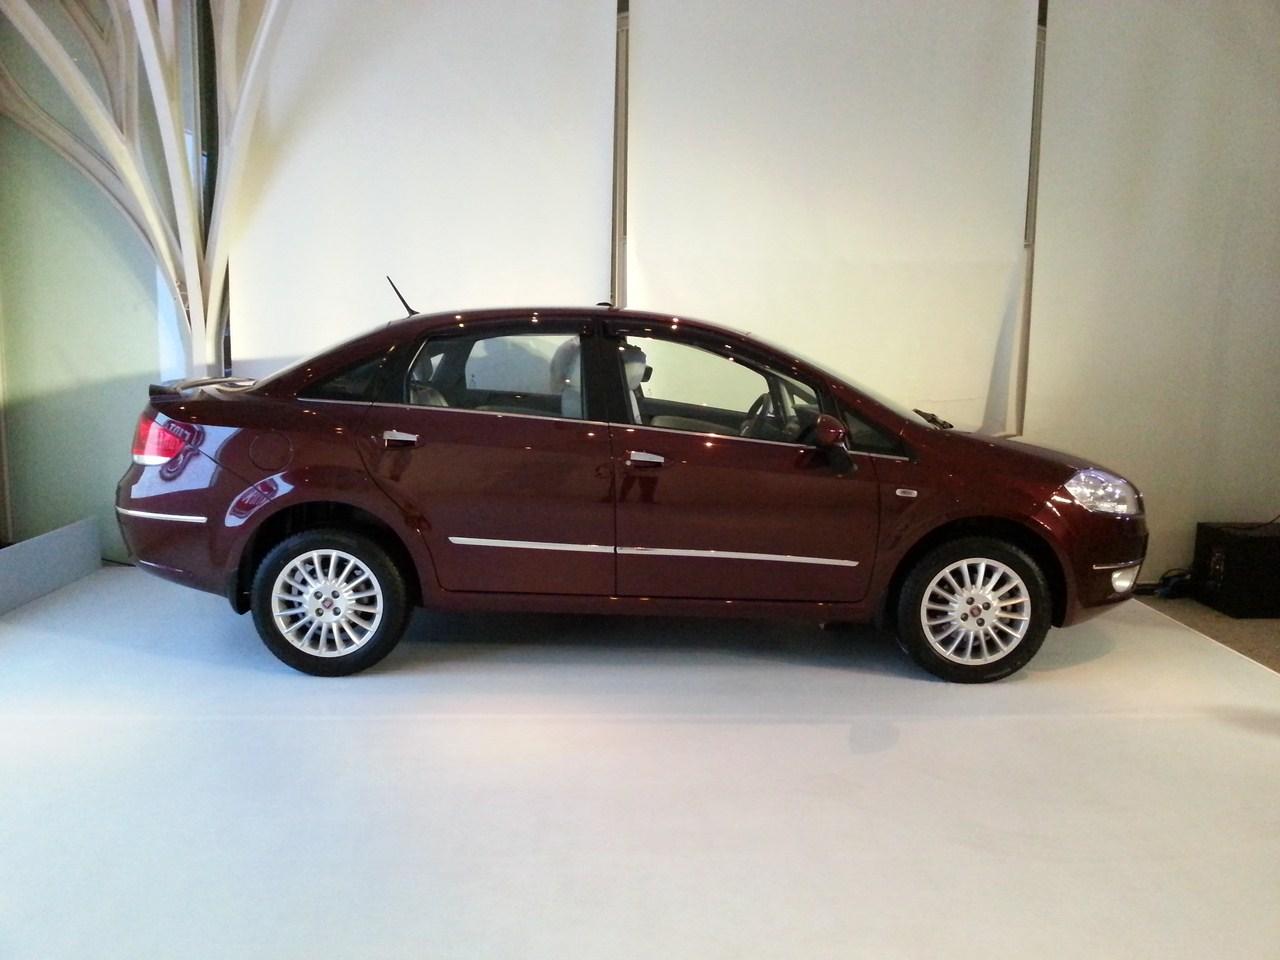 Fiat Linea T-Jet Getting Launched On 10th June 2013